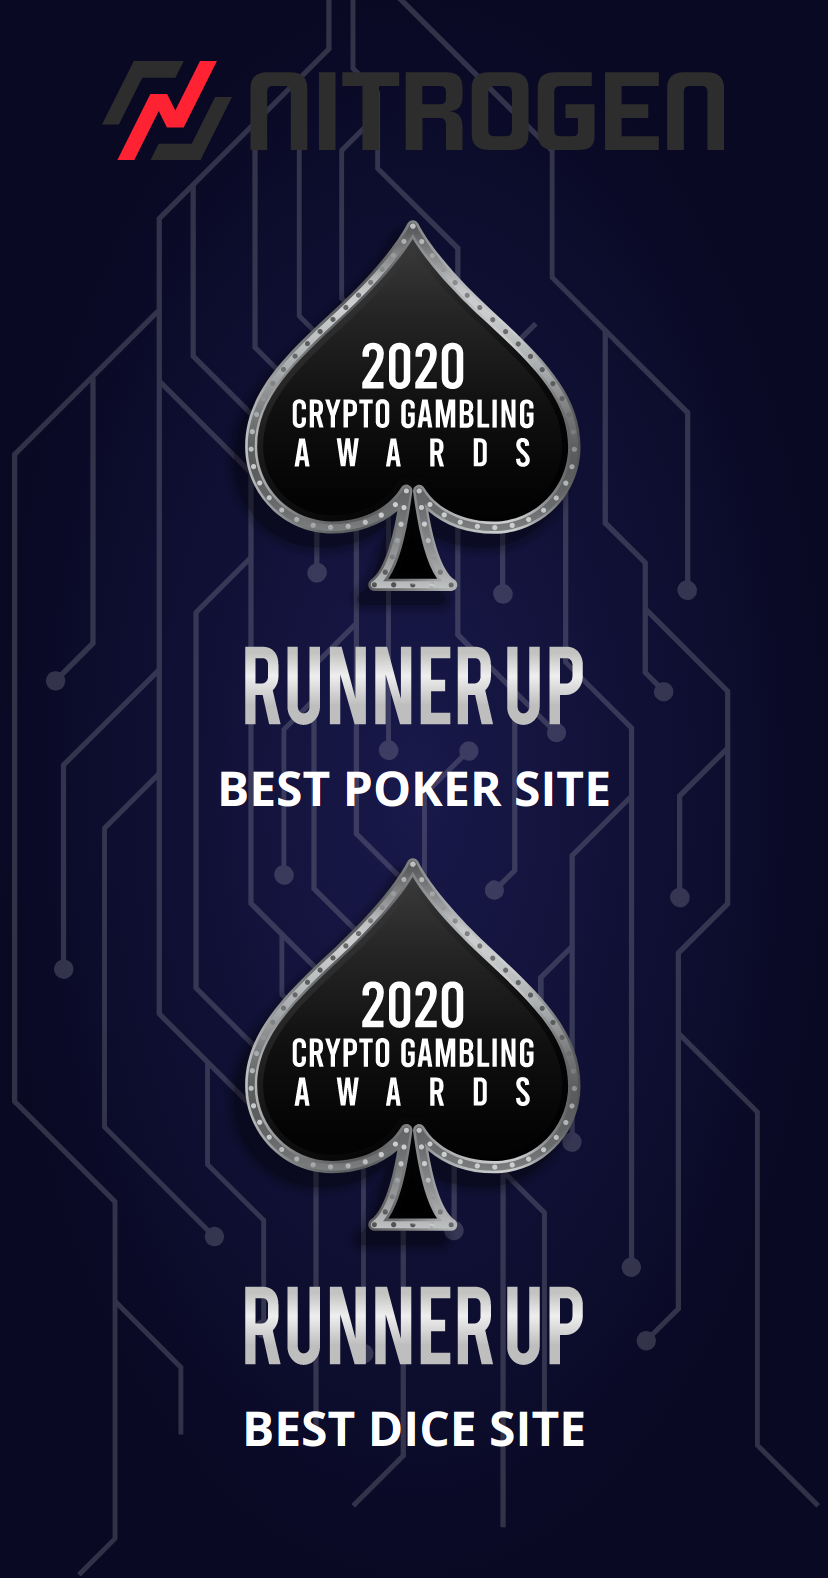 Crypto Gambling Awards won by Nitrogen